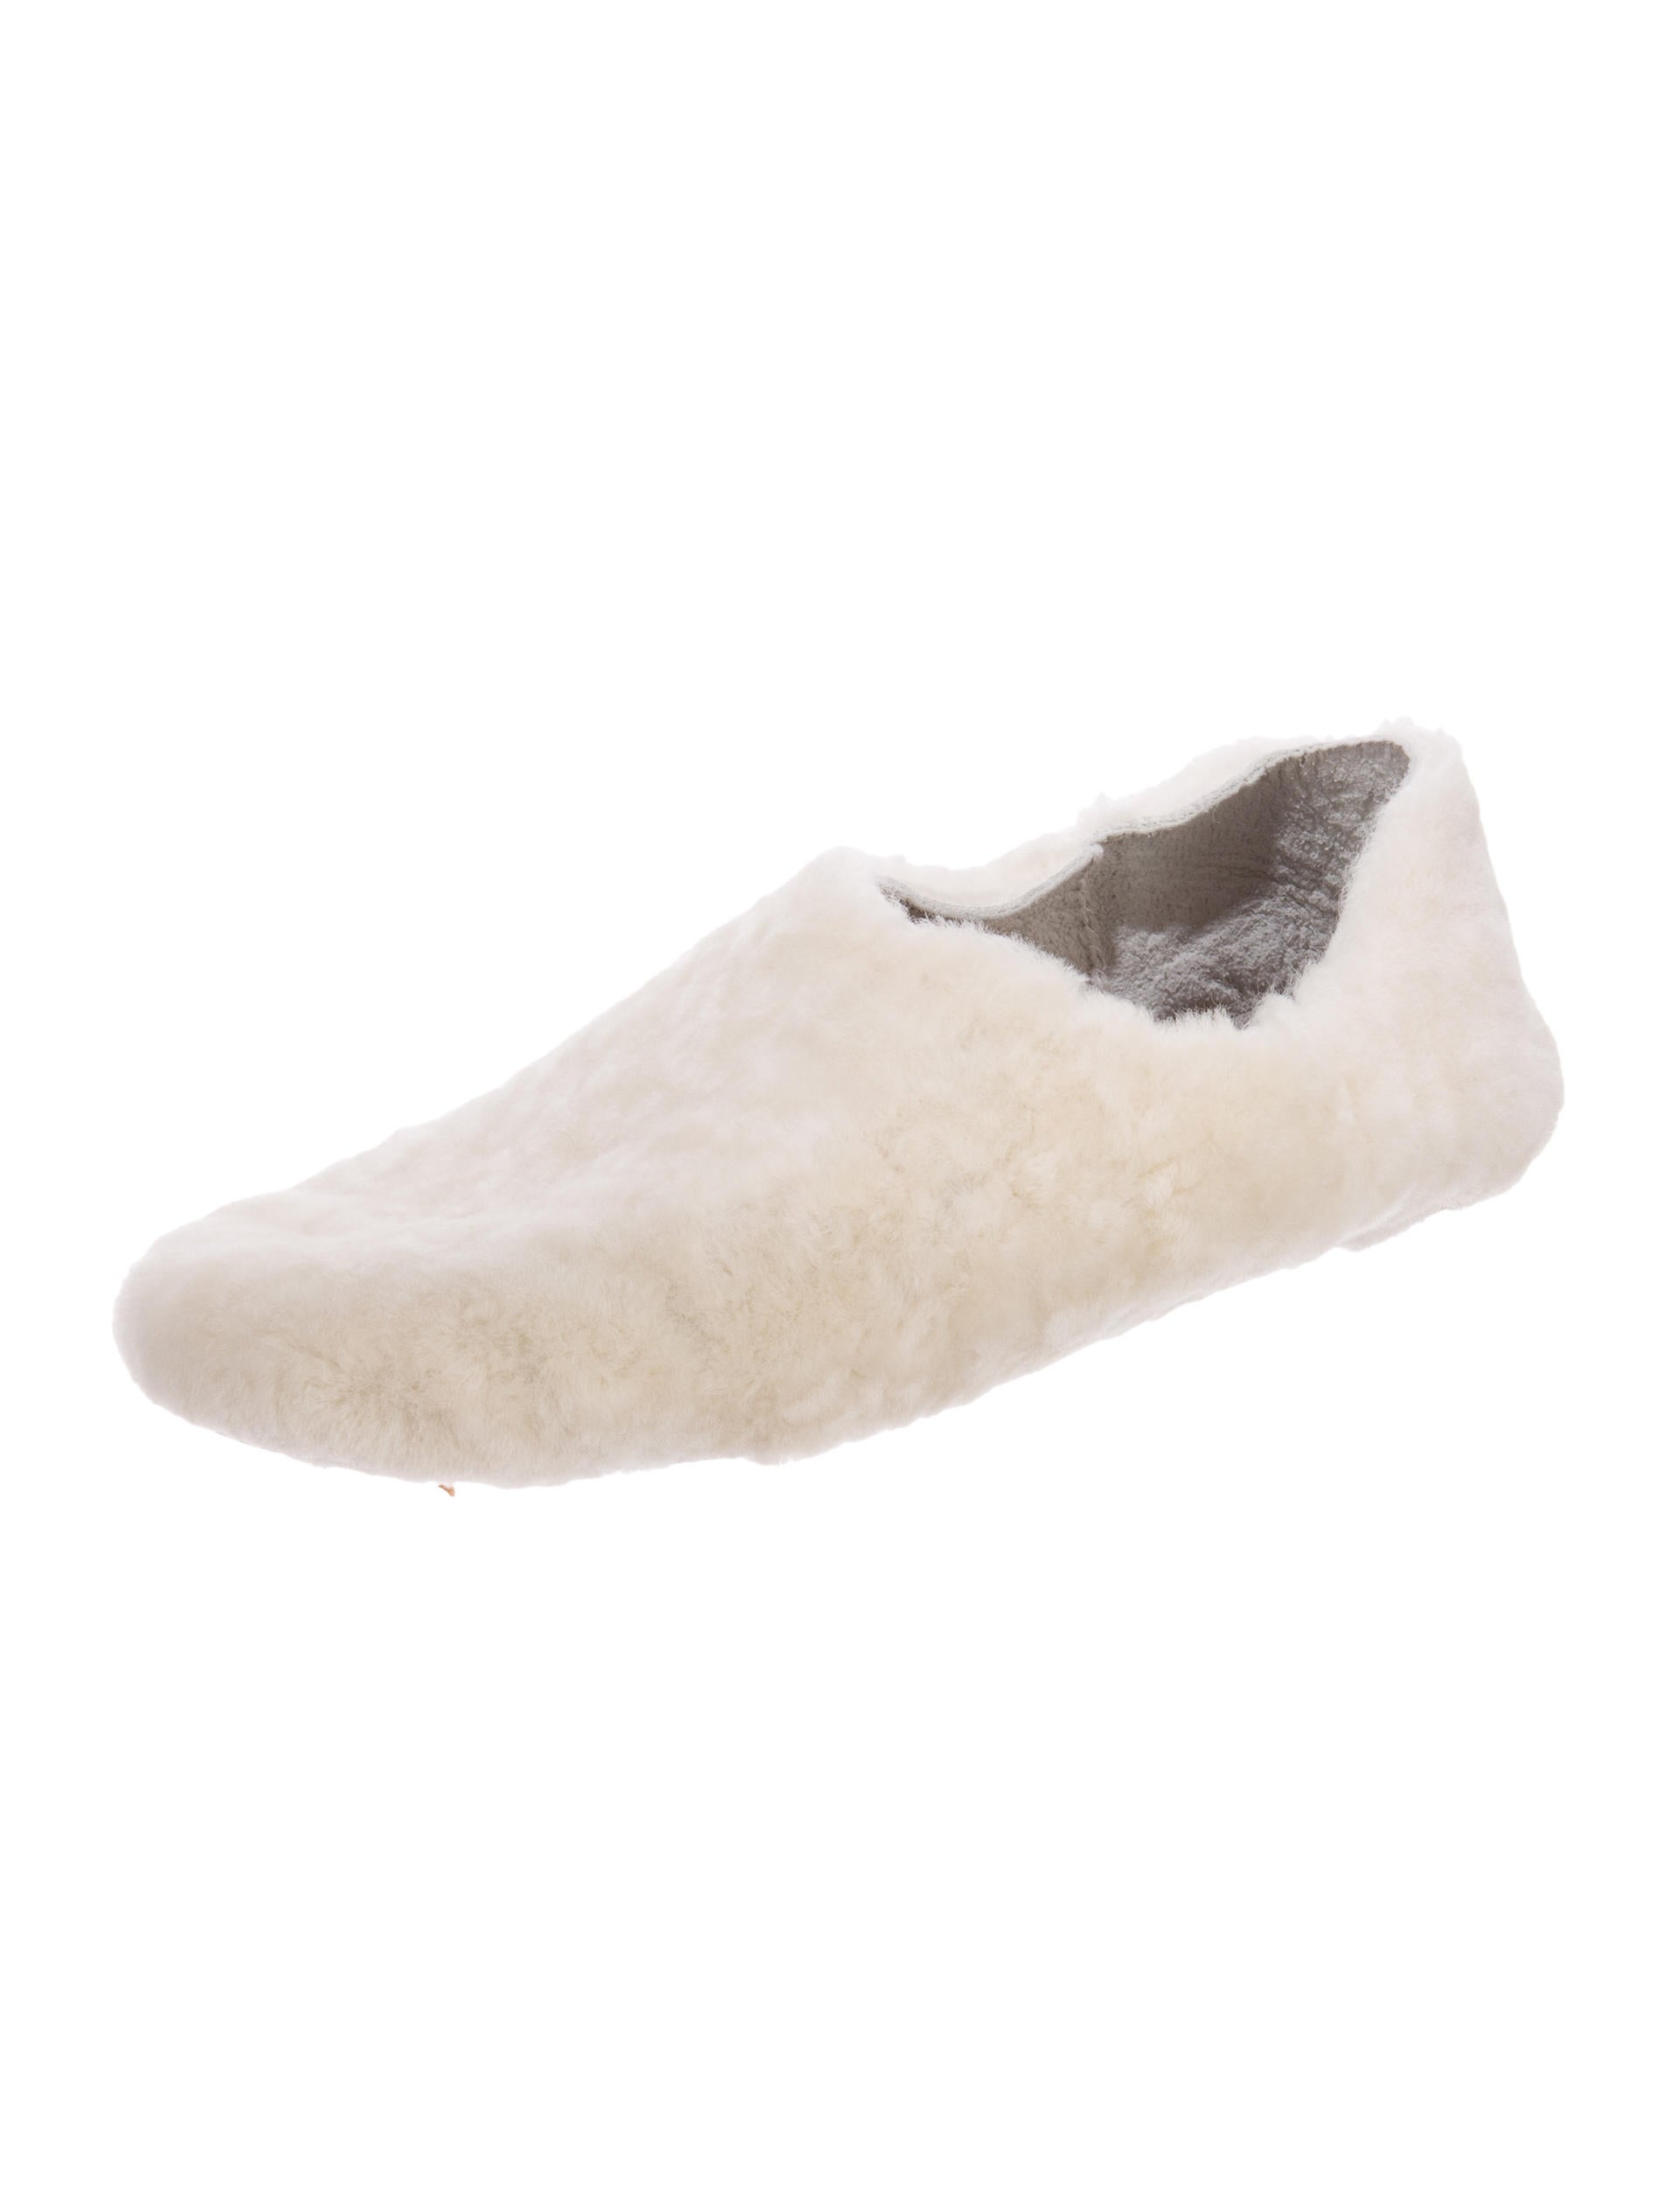 Brother Vellies Shearling Western Sahara Slippers buy cheap clearance store free shipping pictures aRR49